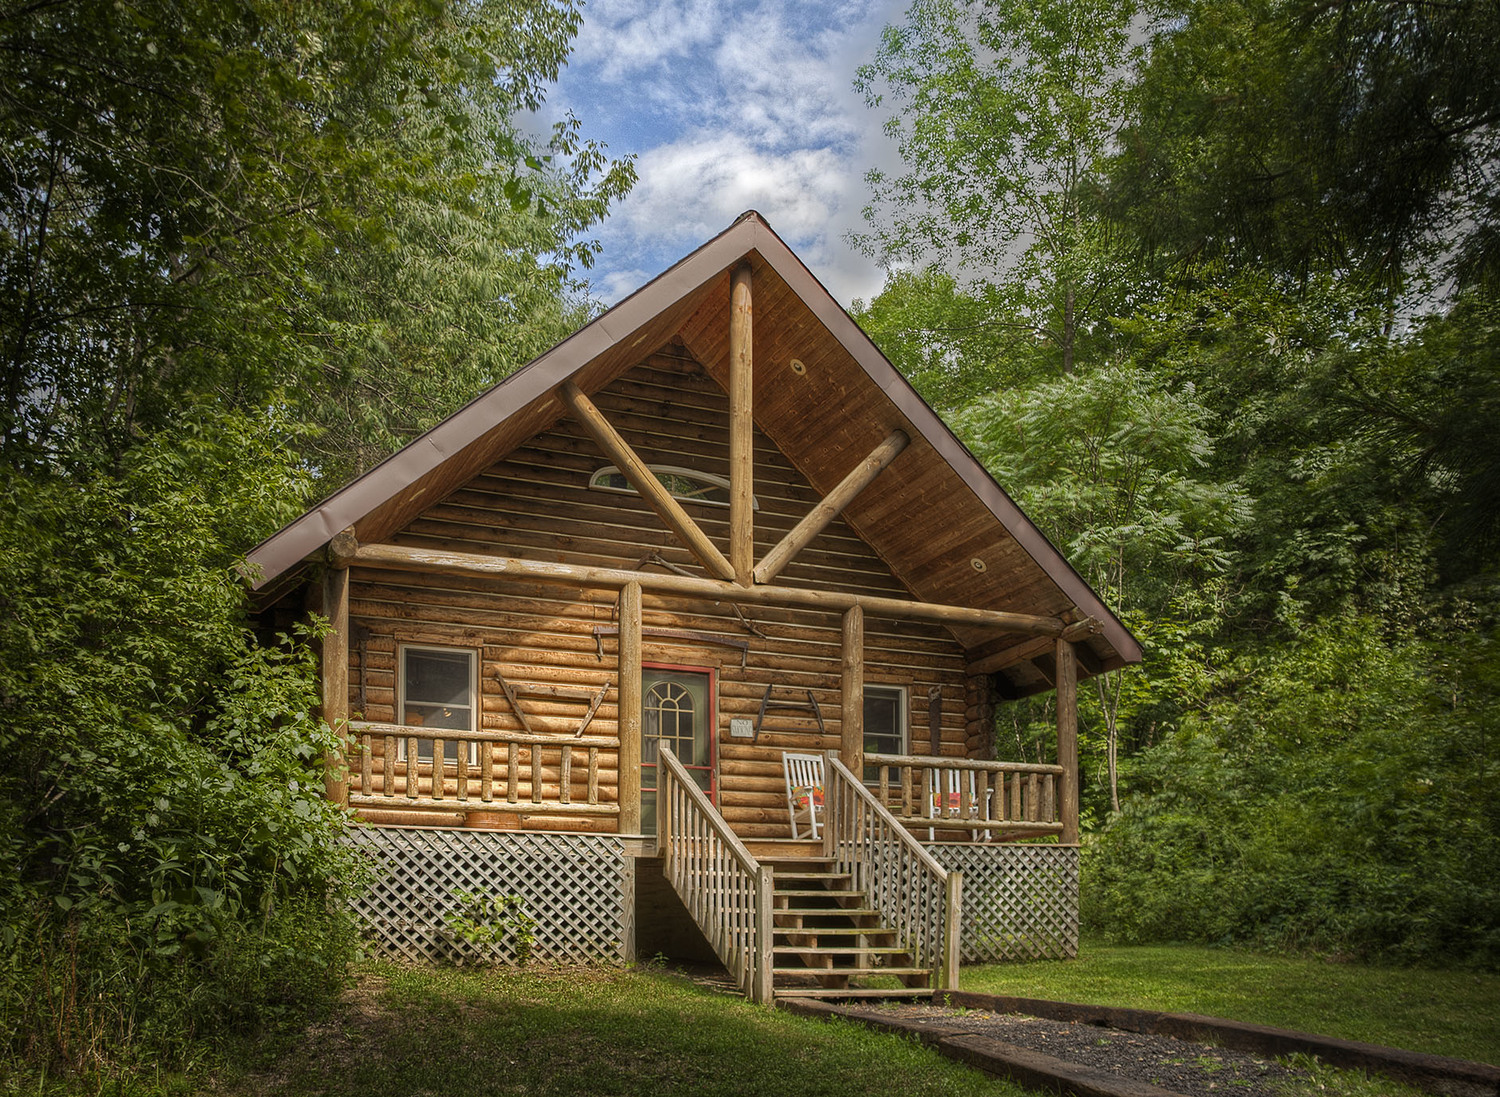 Spacious and comfortable wood cabin